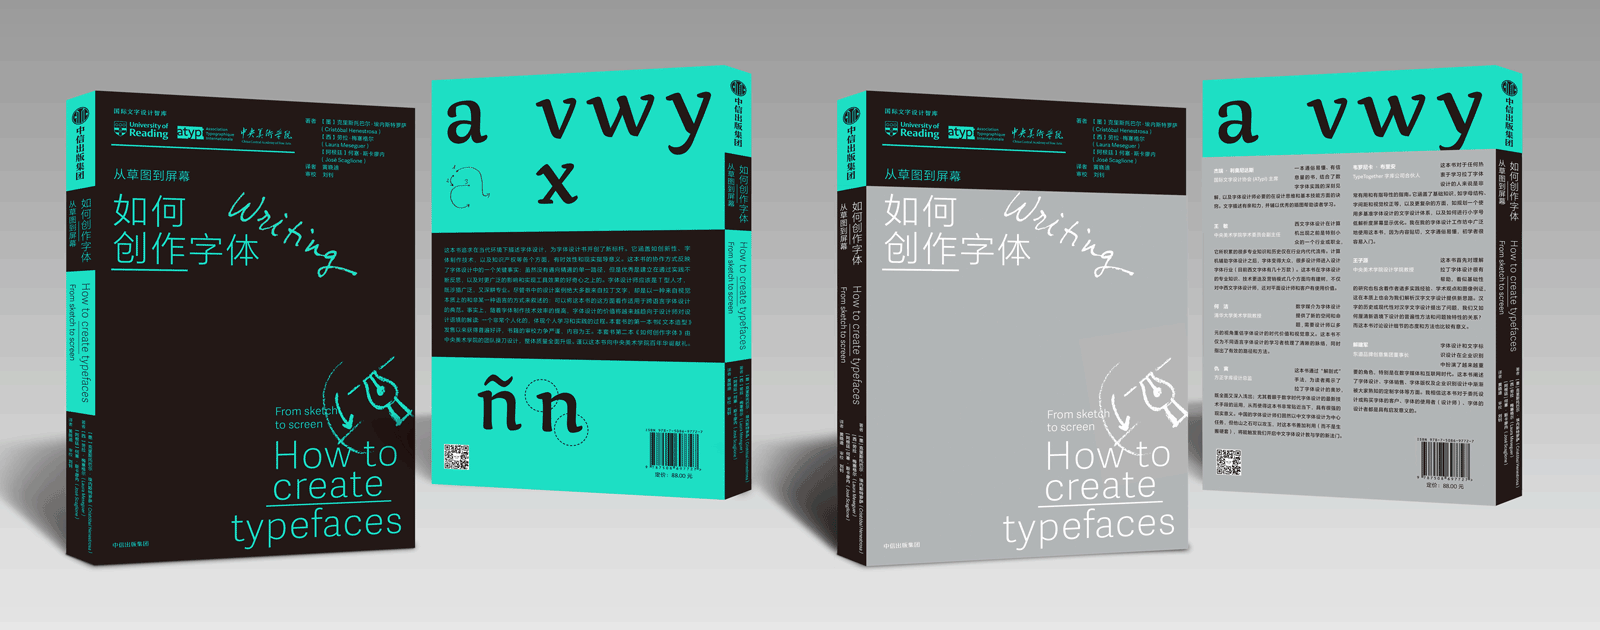 How to create typefaces in Chinese